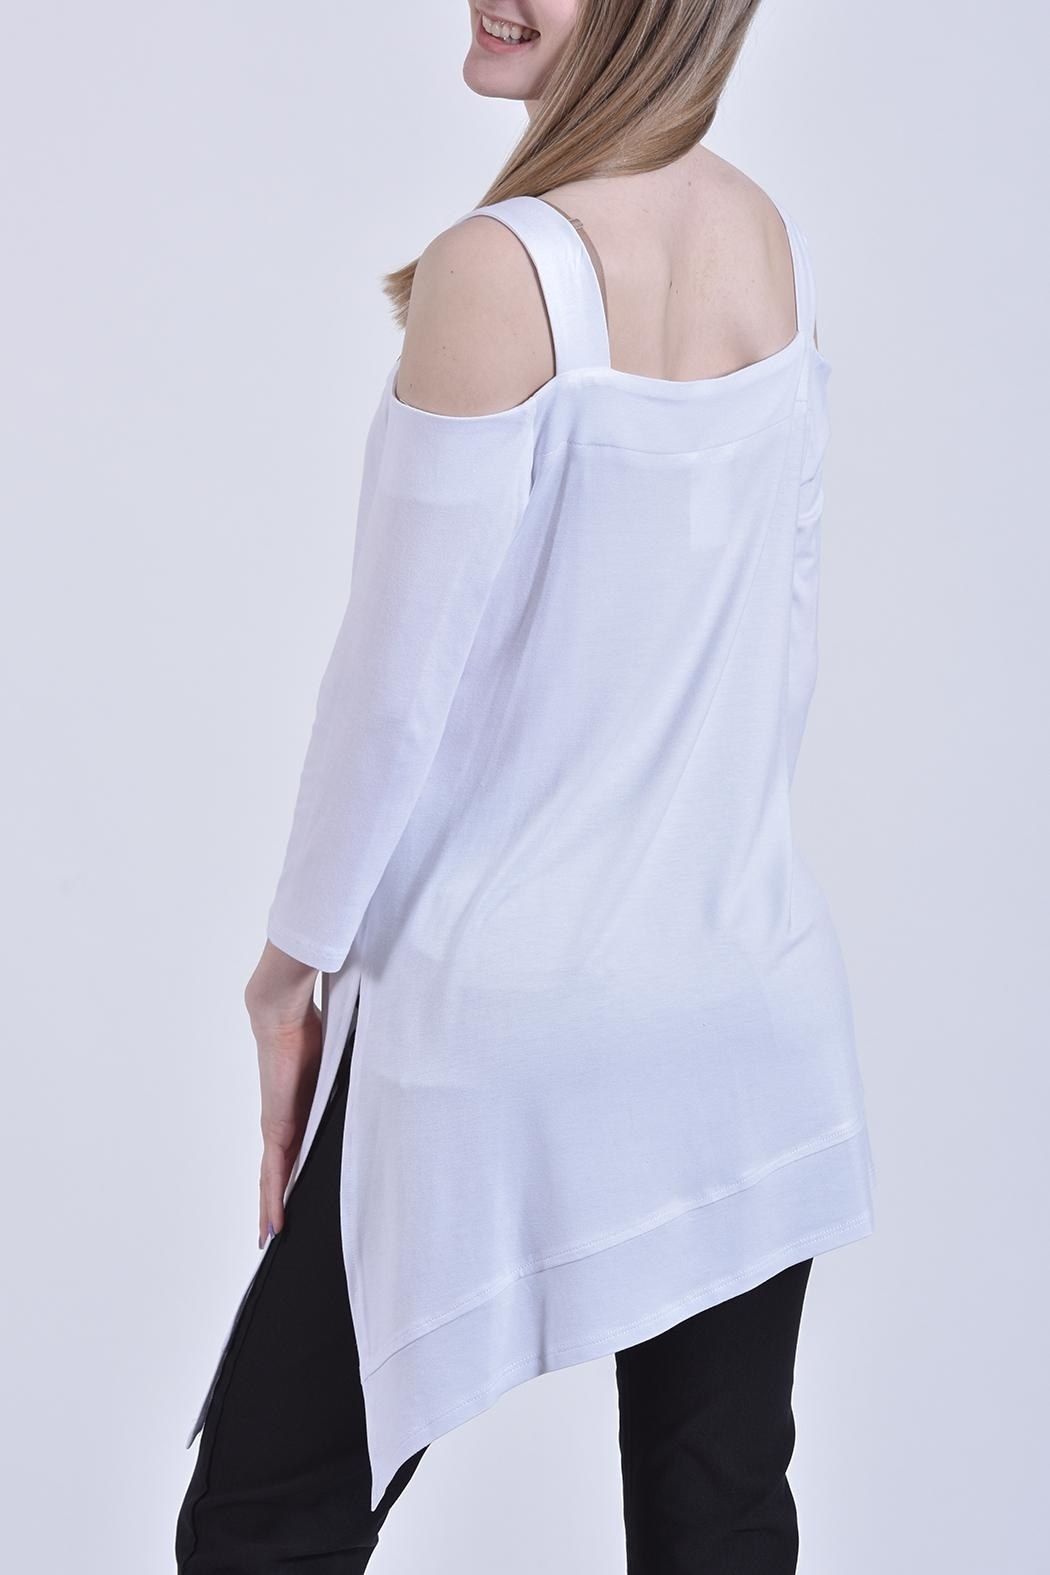 Zoe A-Symmwetrical White Tunic - Front Full Image